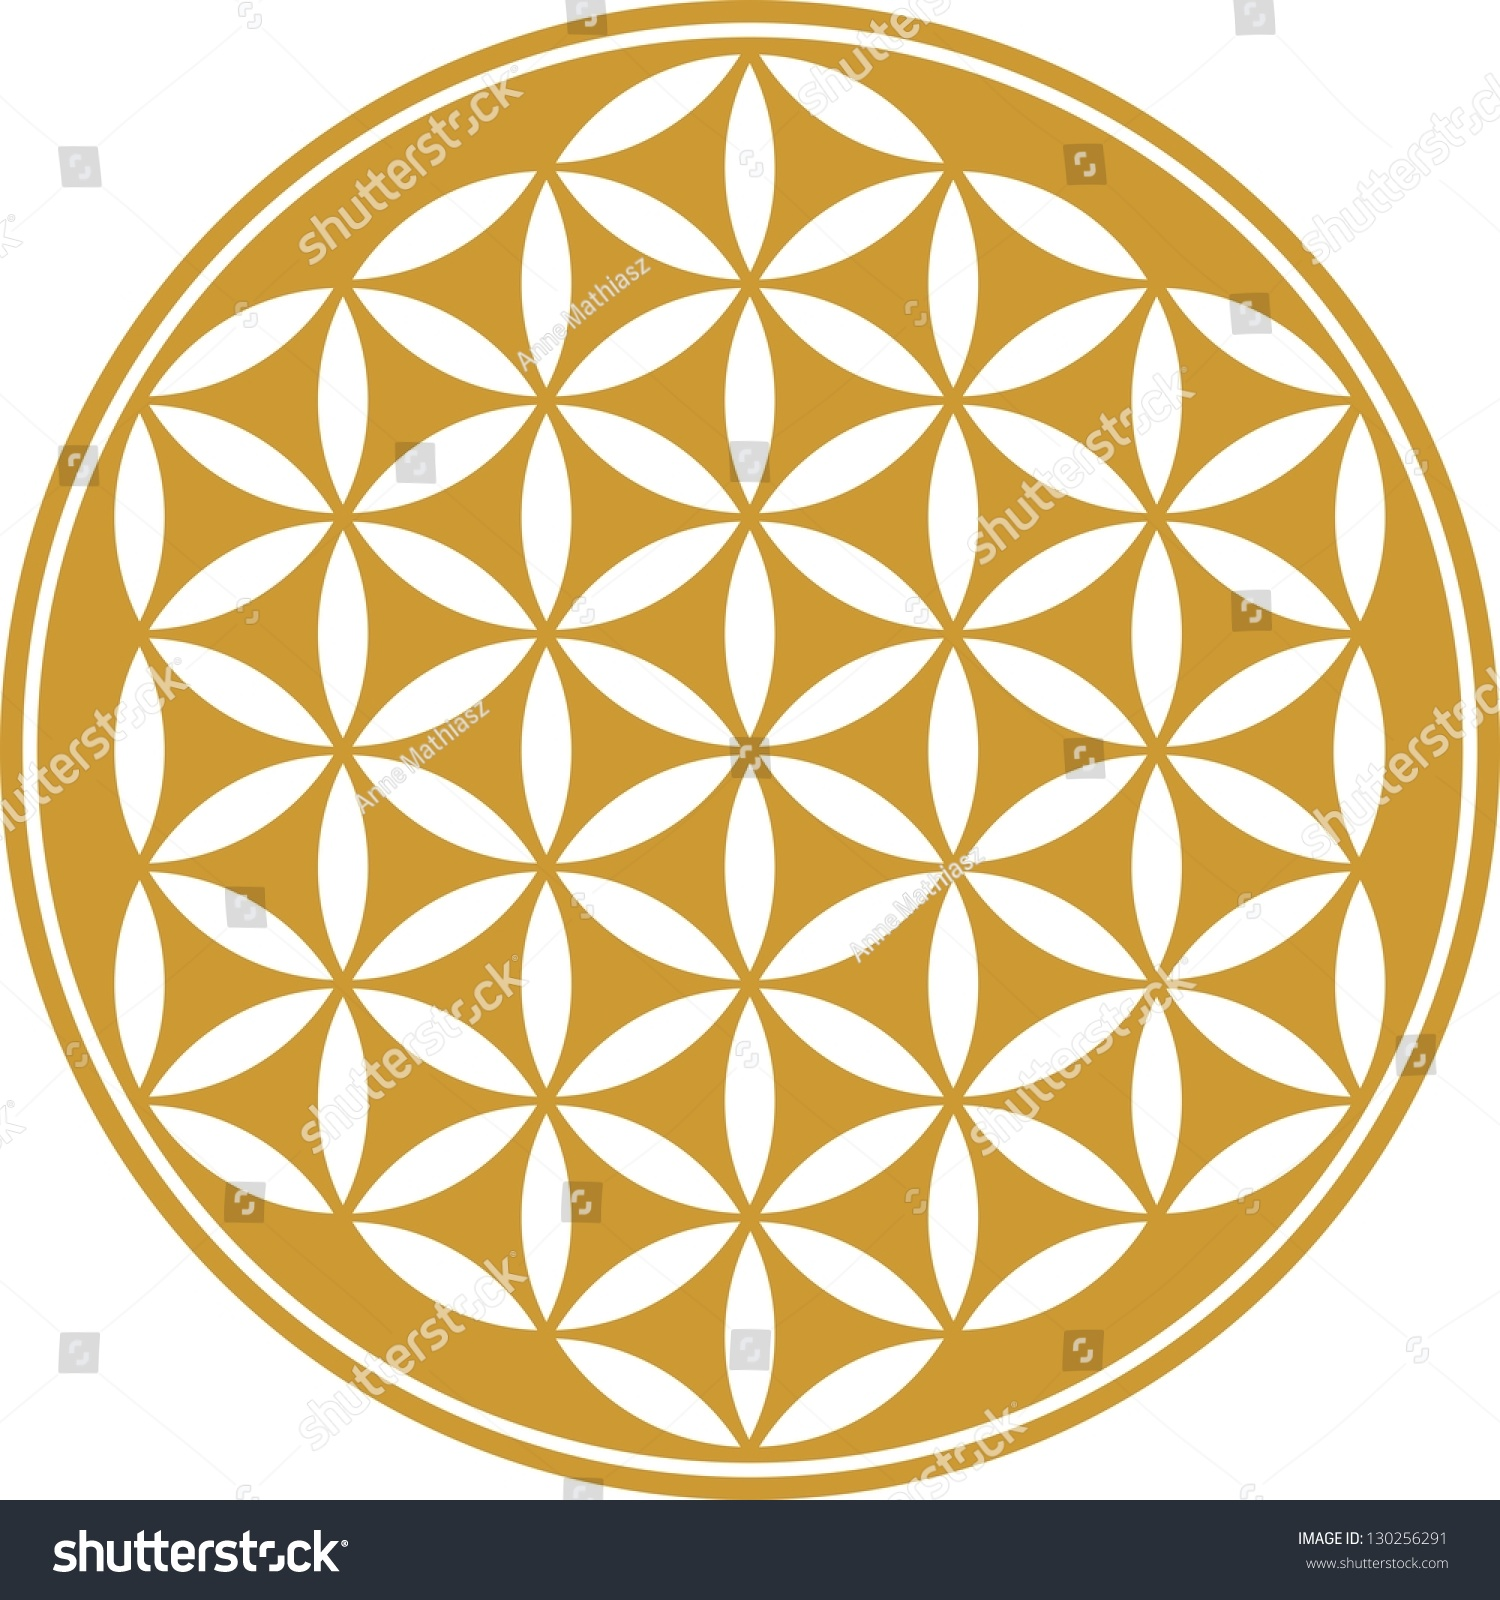 Flower of Life Meaning, Symbol, Pattern and Origin